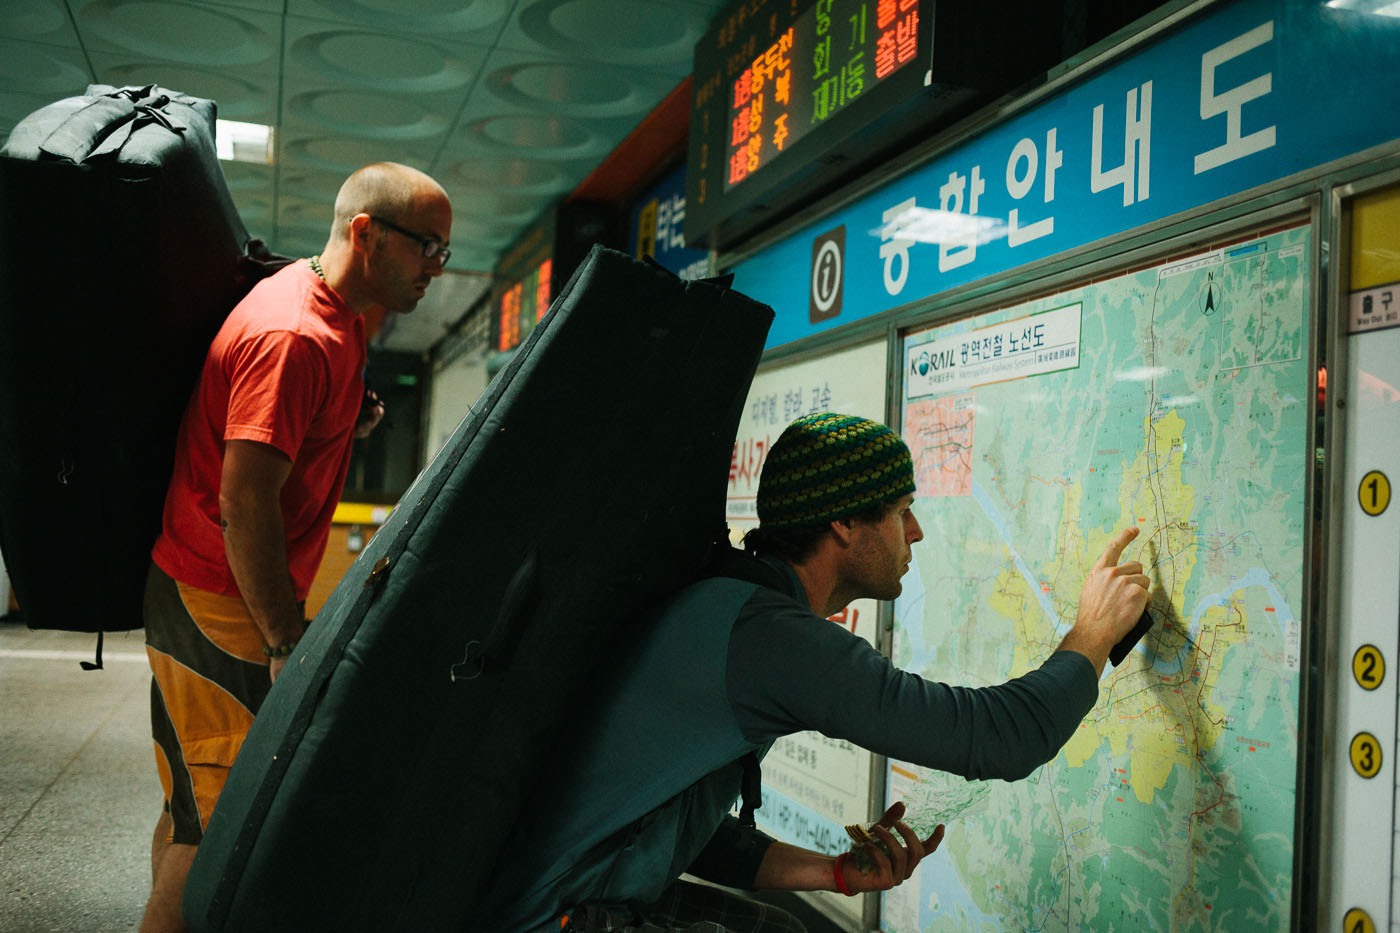 Paul Lammens and Dave McAllister check a subway map in Seoul, South Korea